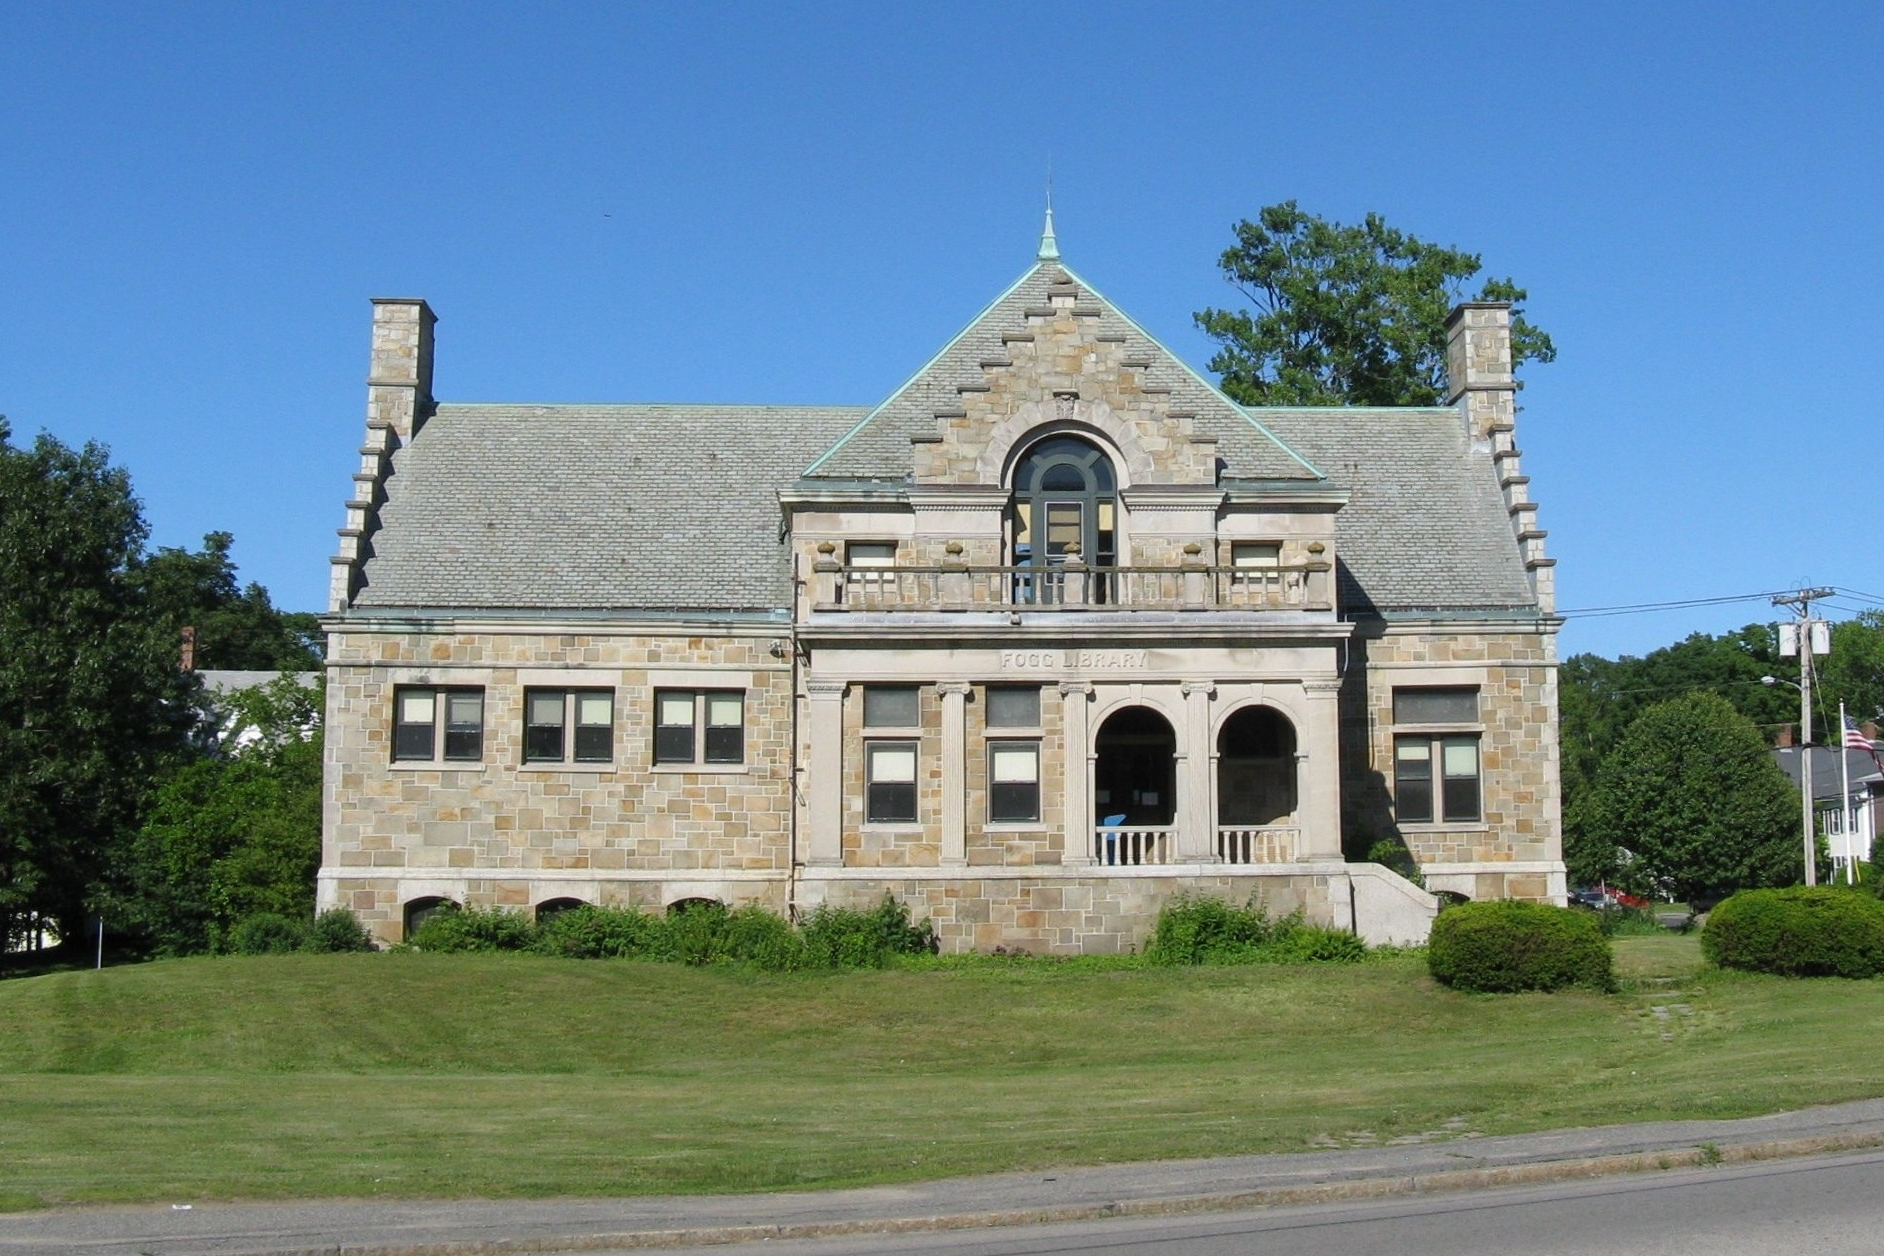 Weymouth Public Schools Administration Building - Government Building in  Weymouth